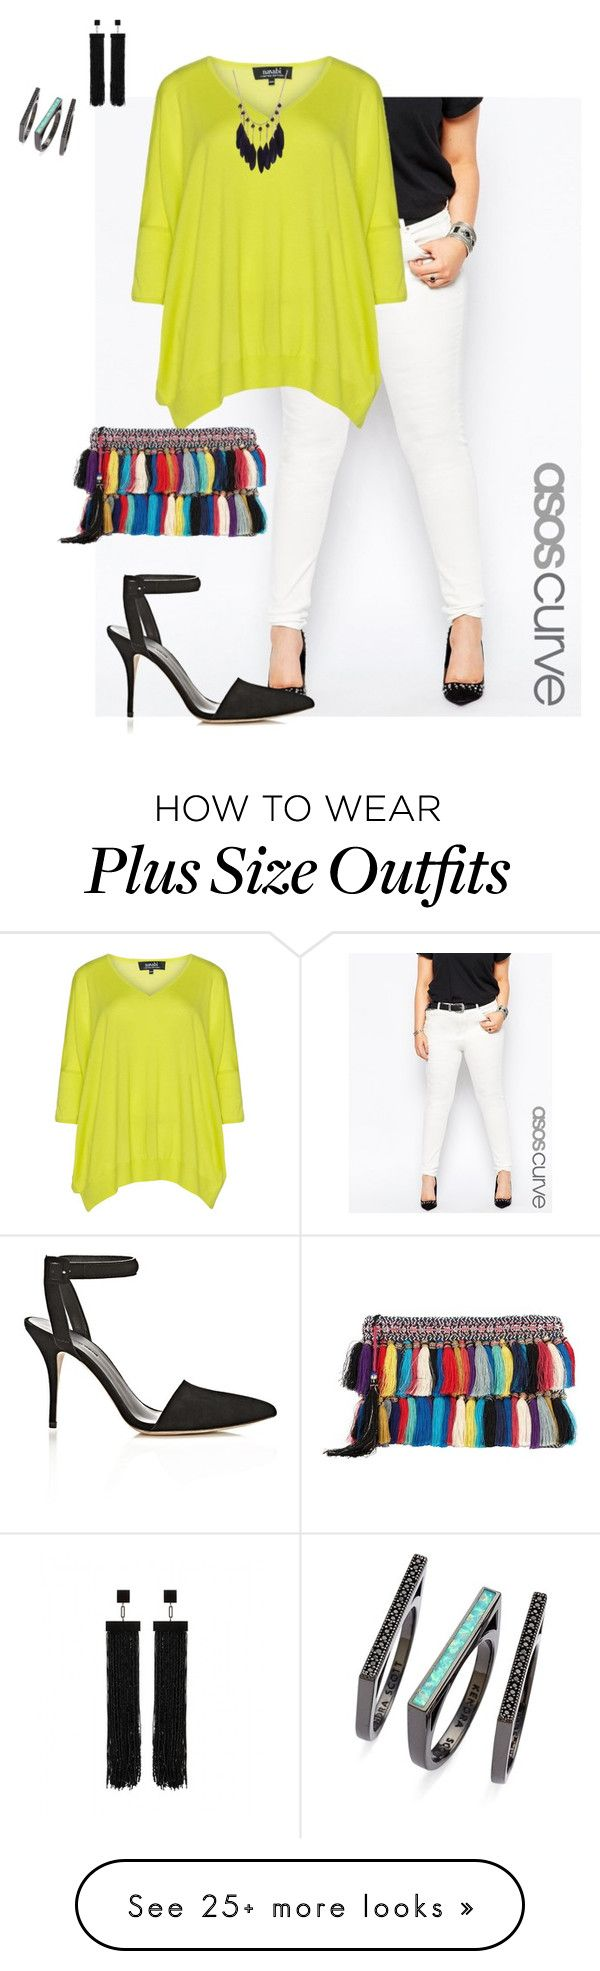 """plus size beyond diva"" by kristie-payne on Polyvore featuring ASOS Curve, navabi, Alexander Wang, Christophe Sauvat, Kendra Scott and Tom Ford"